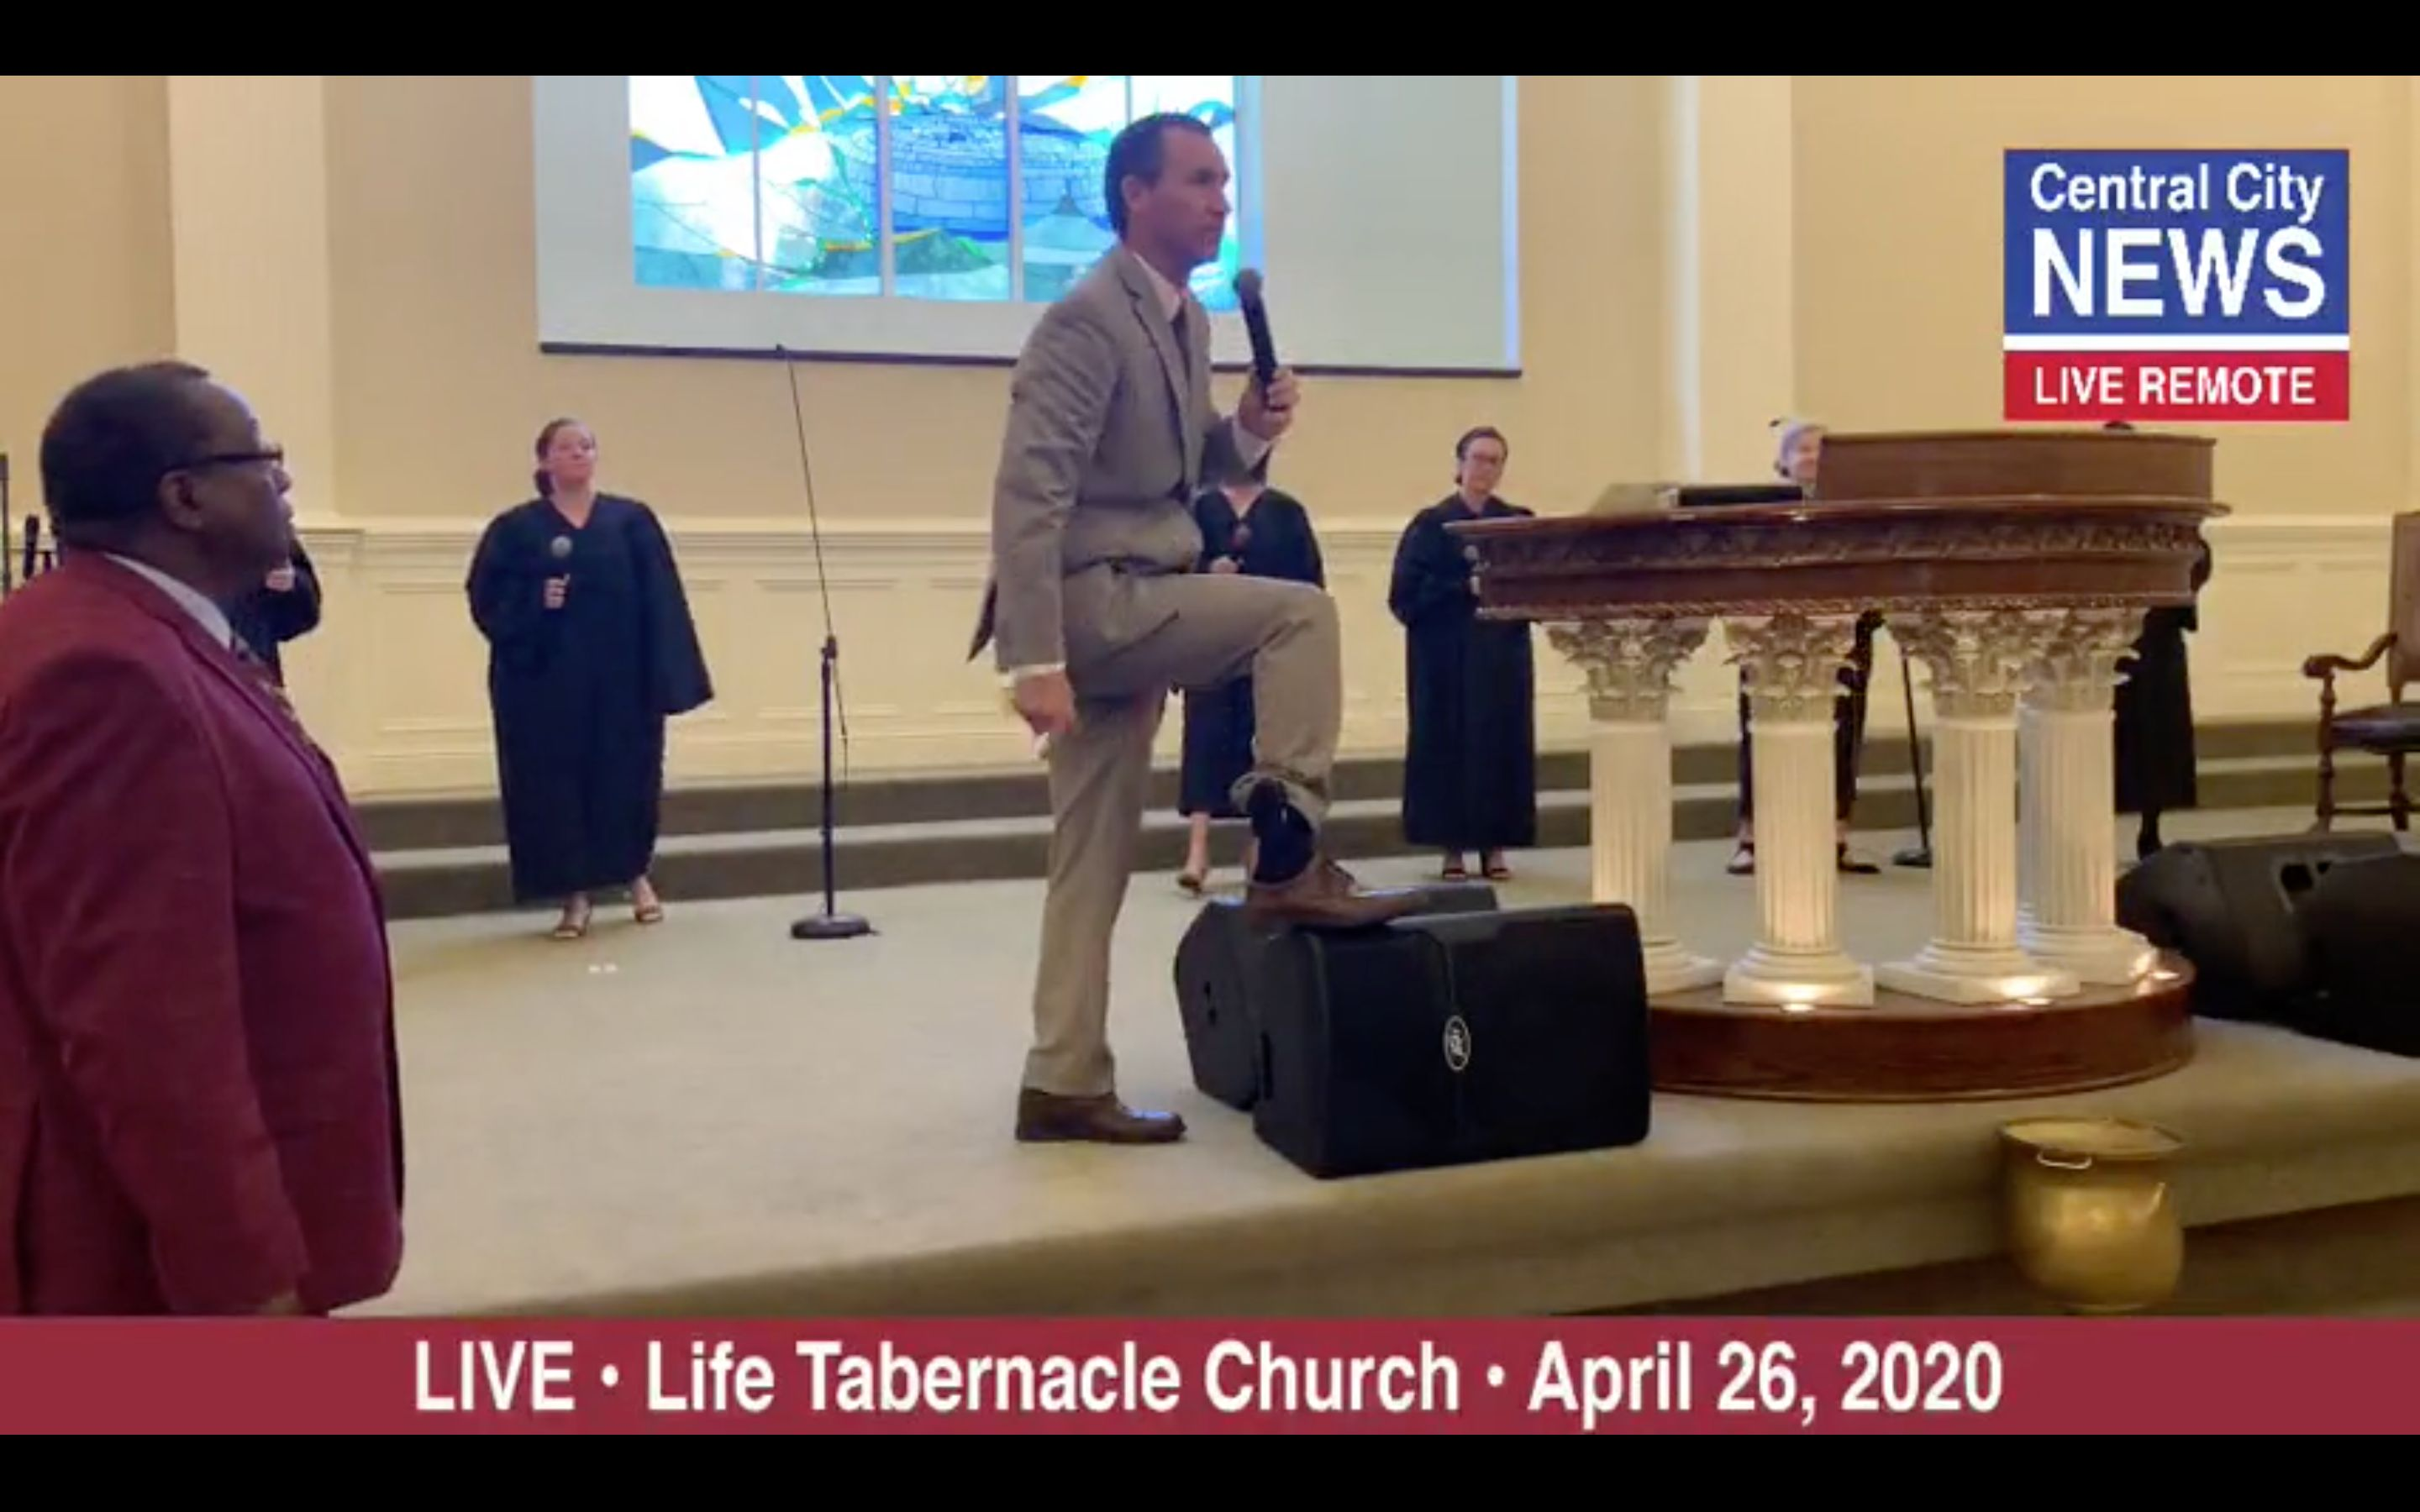 Pentecostal preacher Tony Spell shows off his ankle monitor during a church service on Sunday. Spell is under house arrest fo